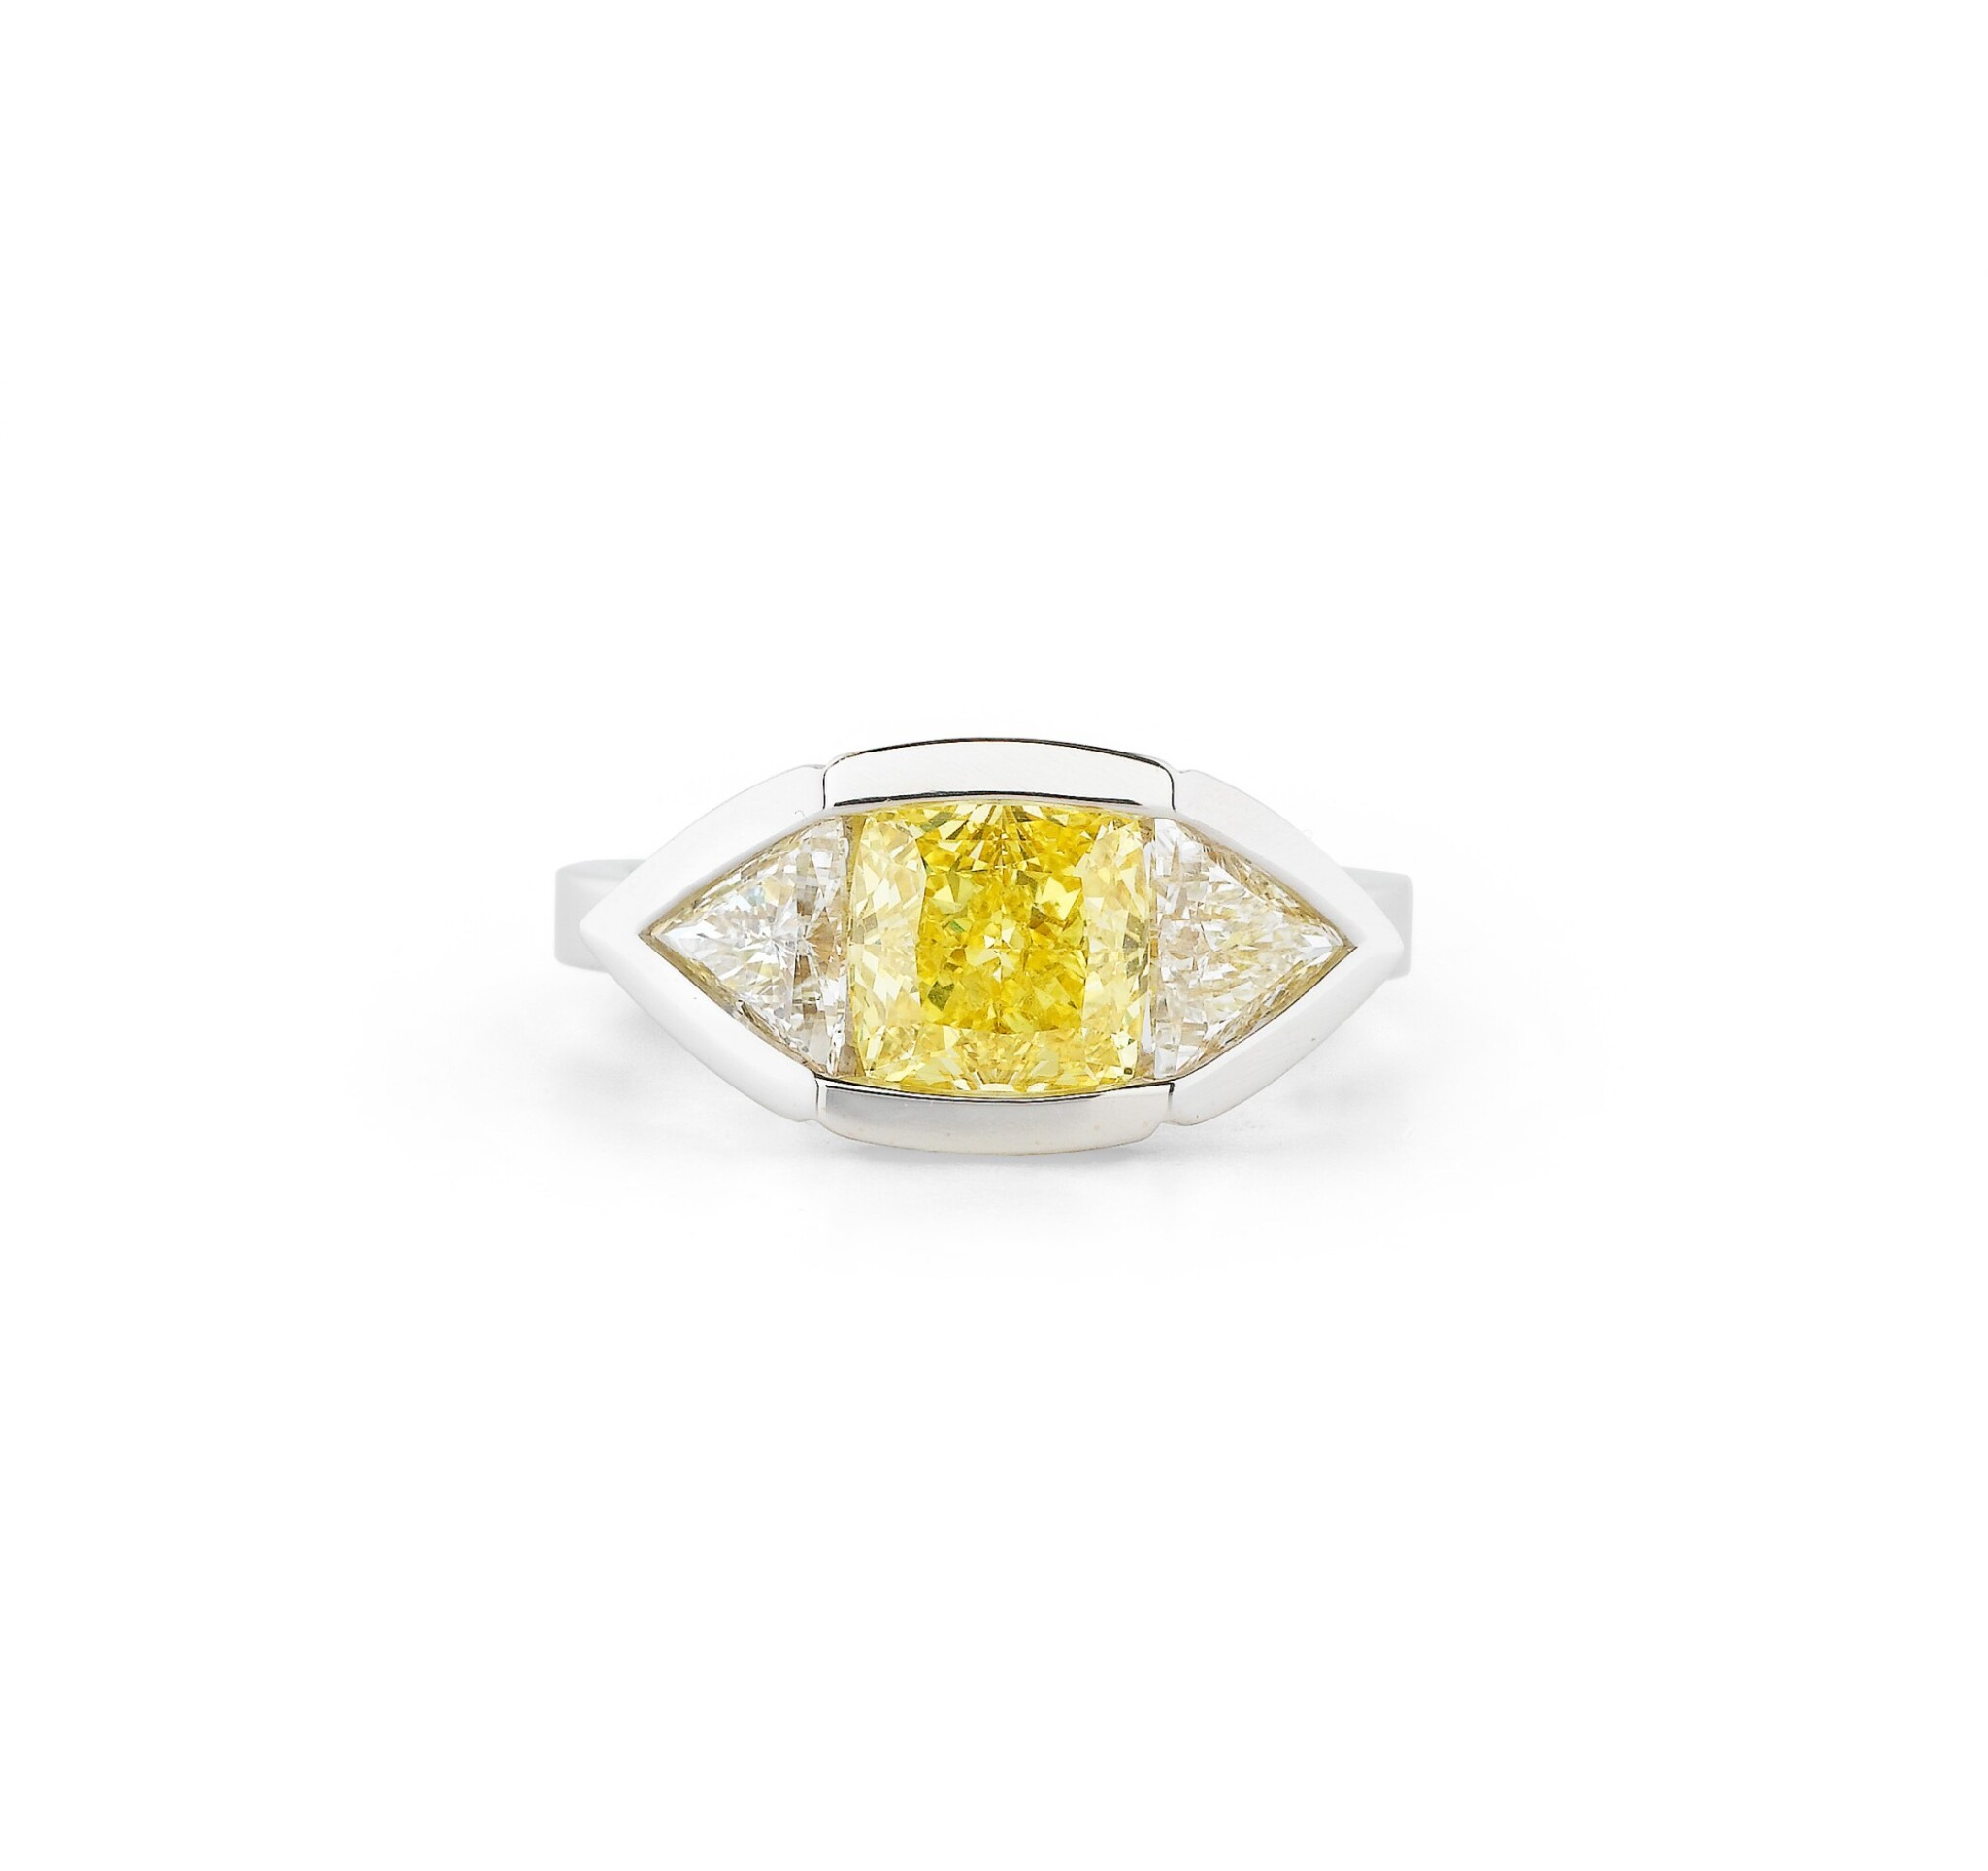 View full screen - View 1 of Lot 112. BAGUE DIAMANT FANCY VIVID YELLOW ET DIAMANTS | FANCY VIVID YELLOW DIAMOND AND DIAMOND RING.